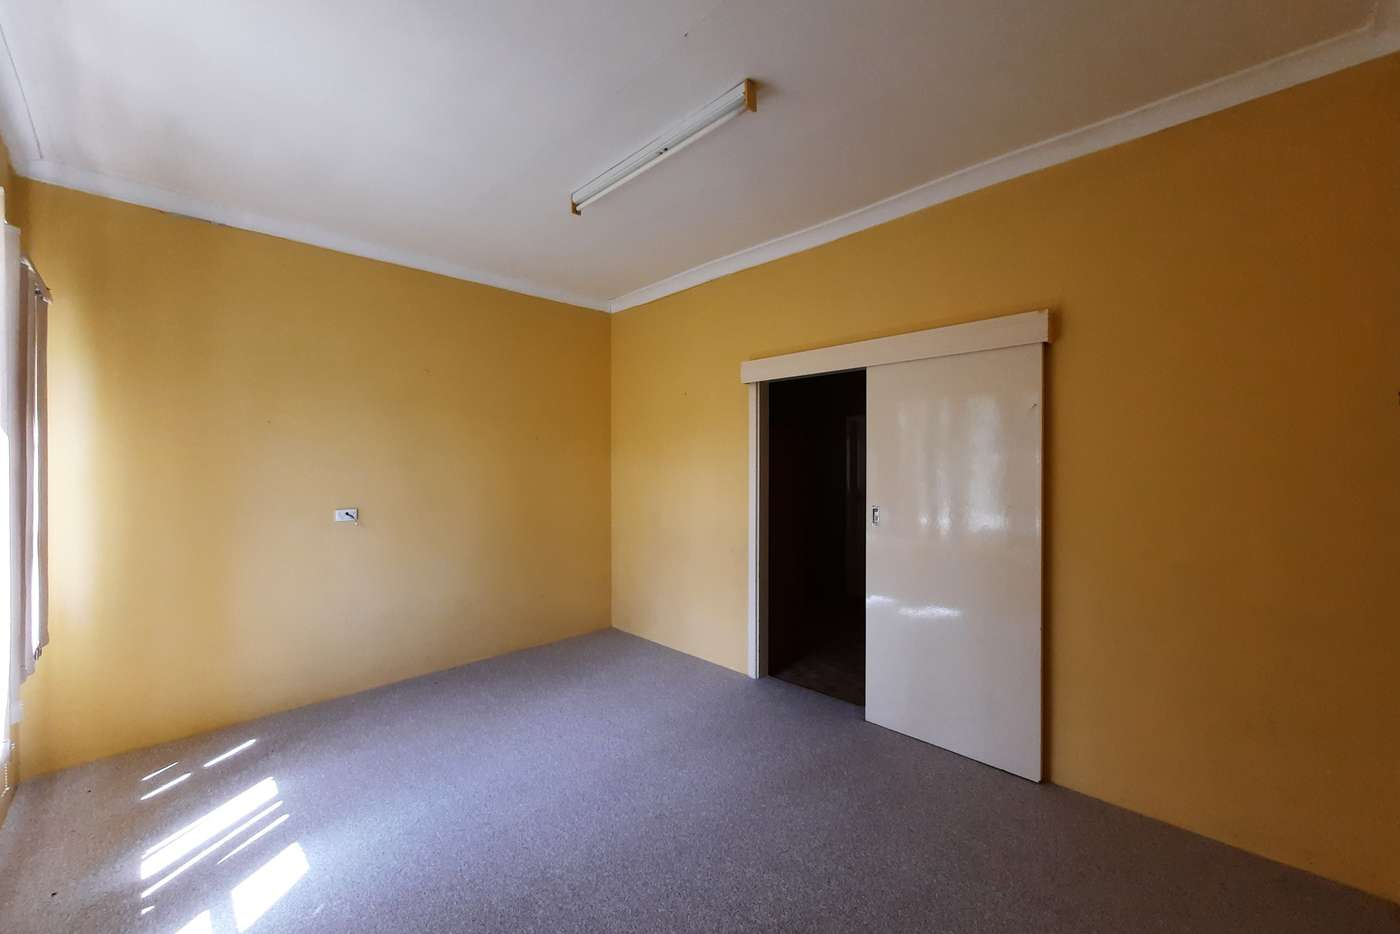 Sixth view of Homely house listing, 28 Fourth Street, Quorn SA 5433